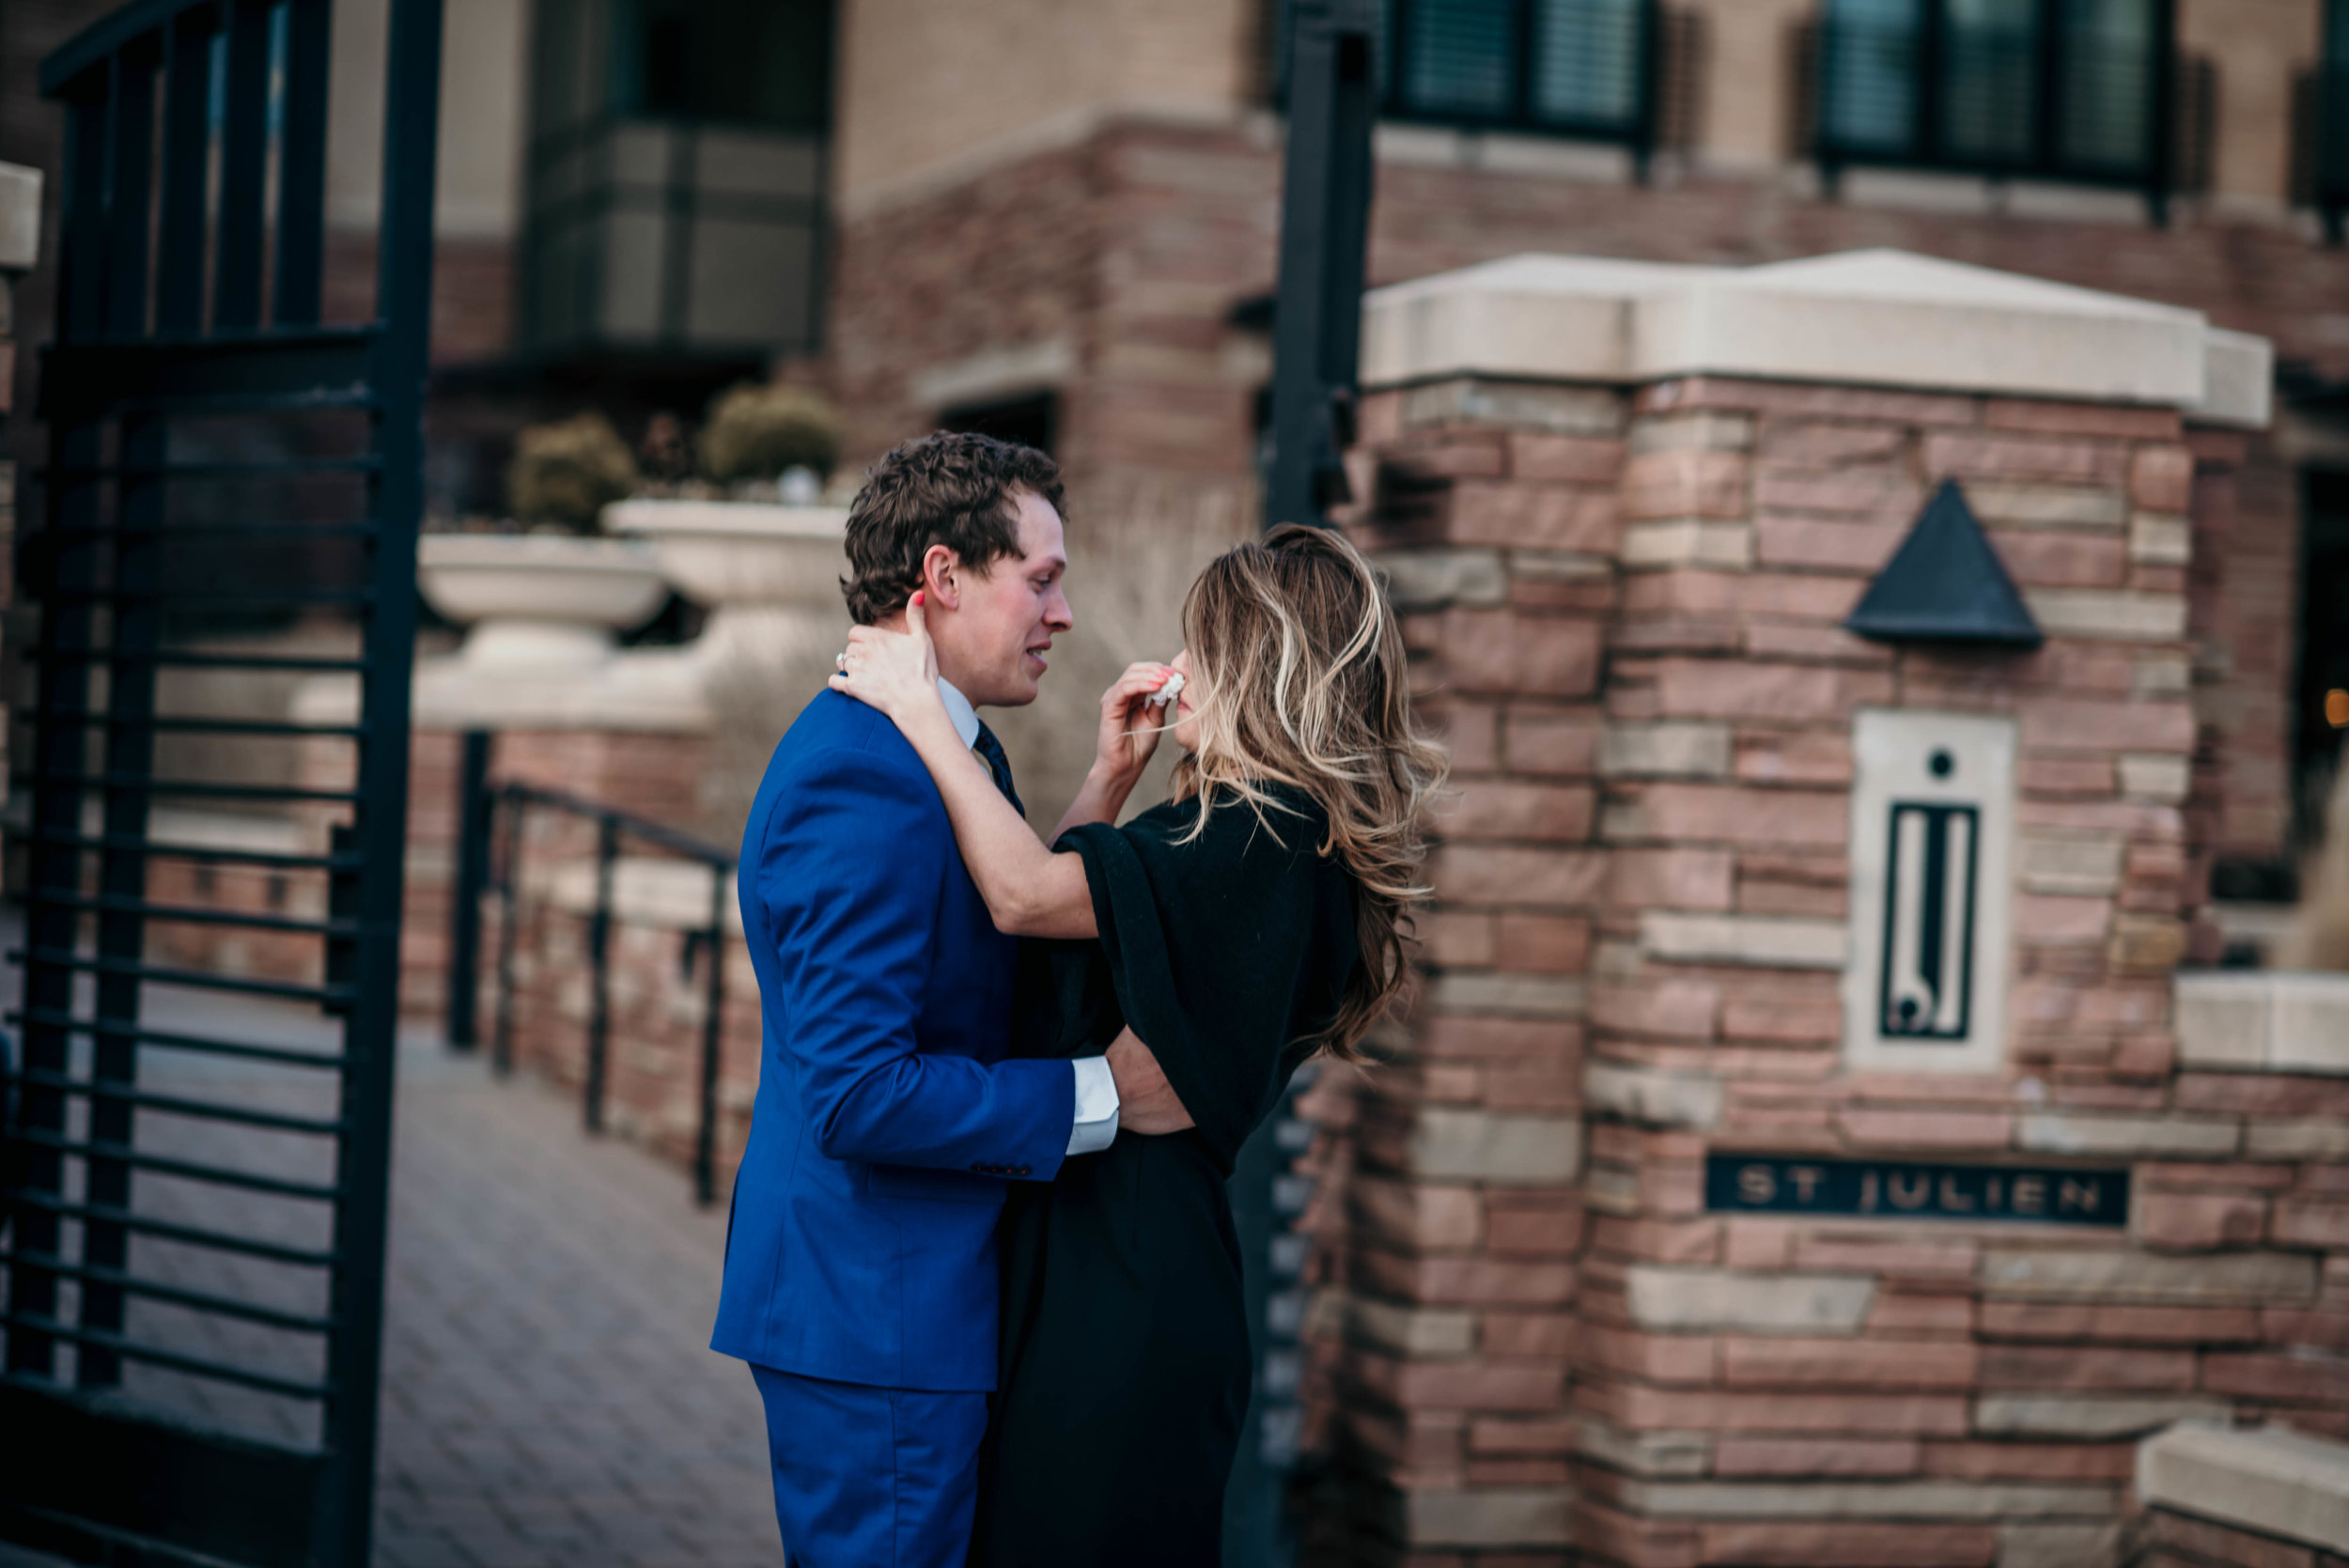 colorado_proposal_photographer_0341.jpg